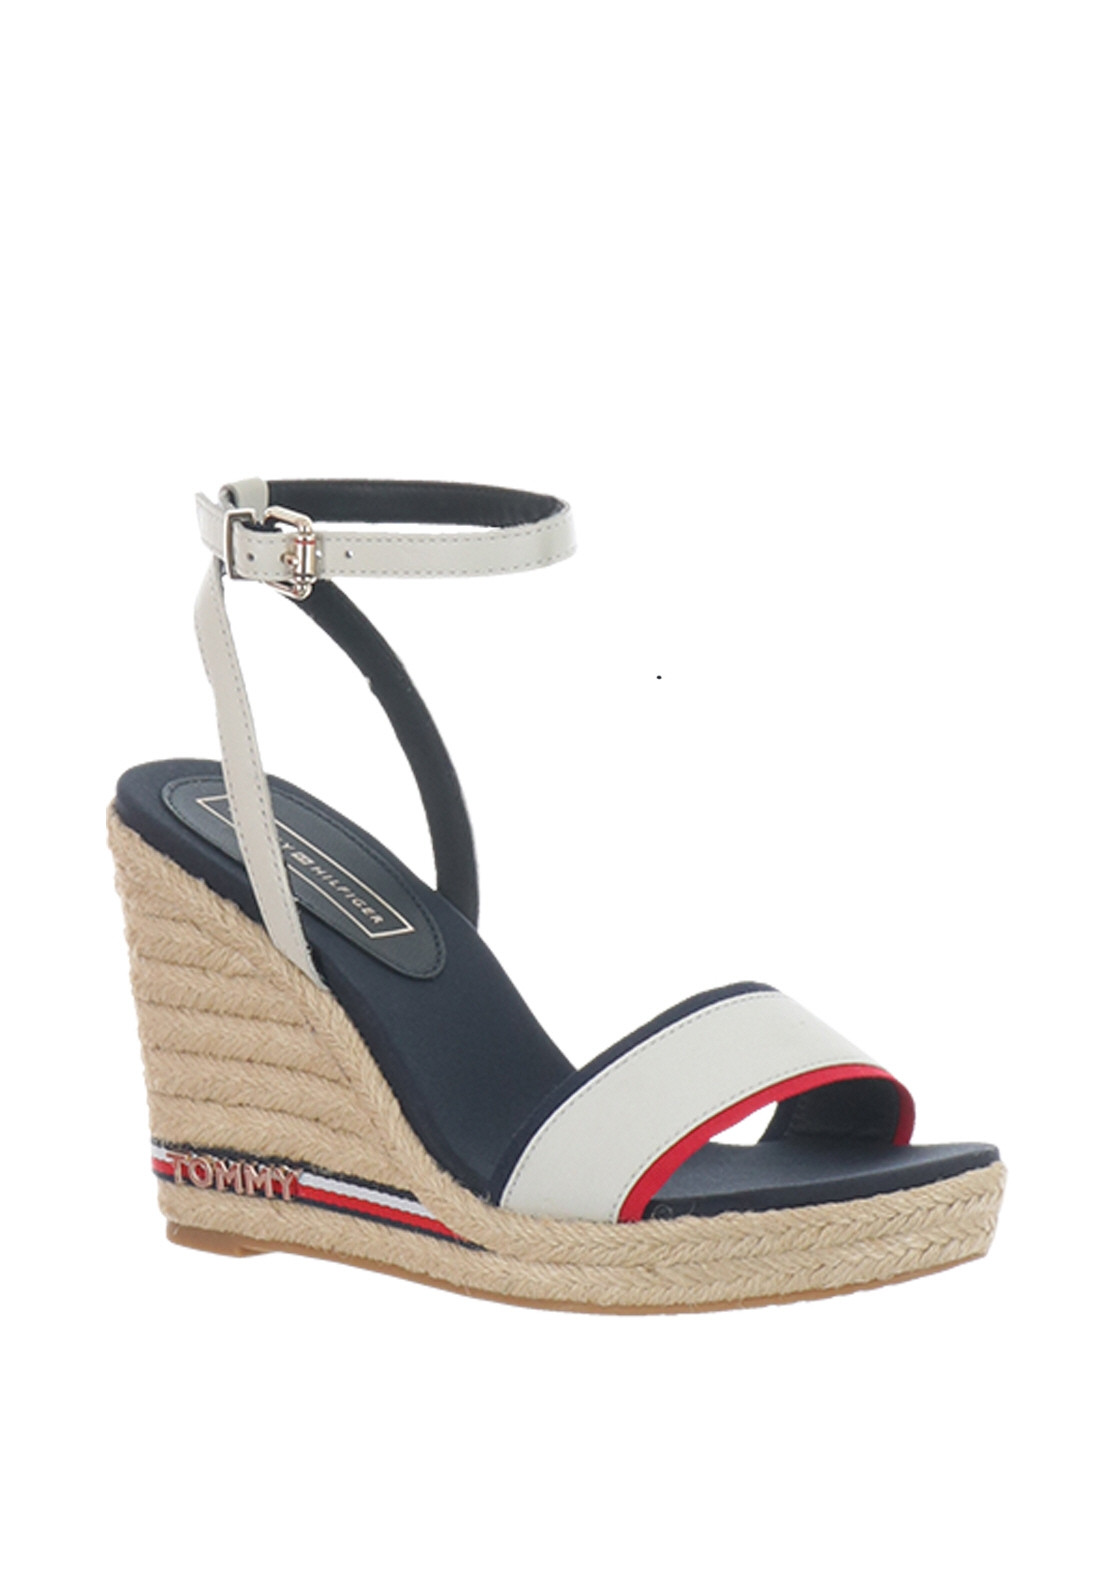 4929de4d53c Tommy Hilfiger Womens Elena Wedge Sandals, White Multi